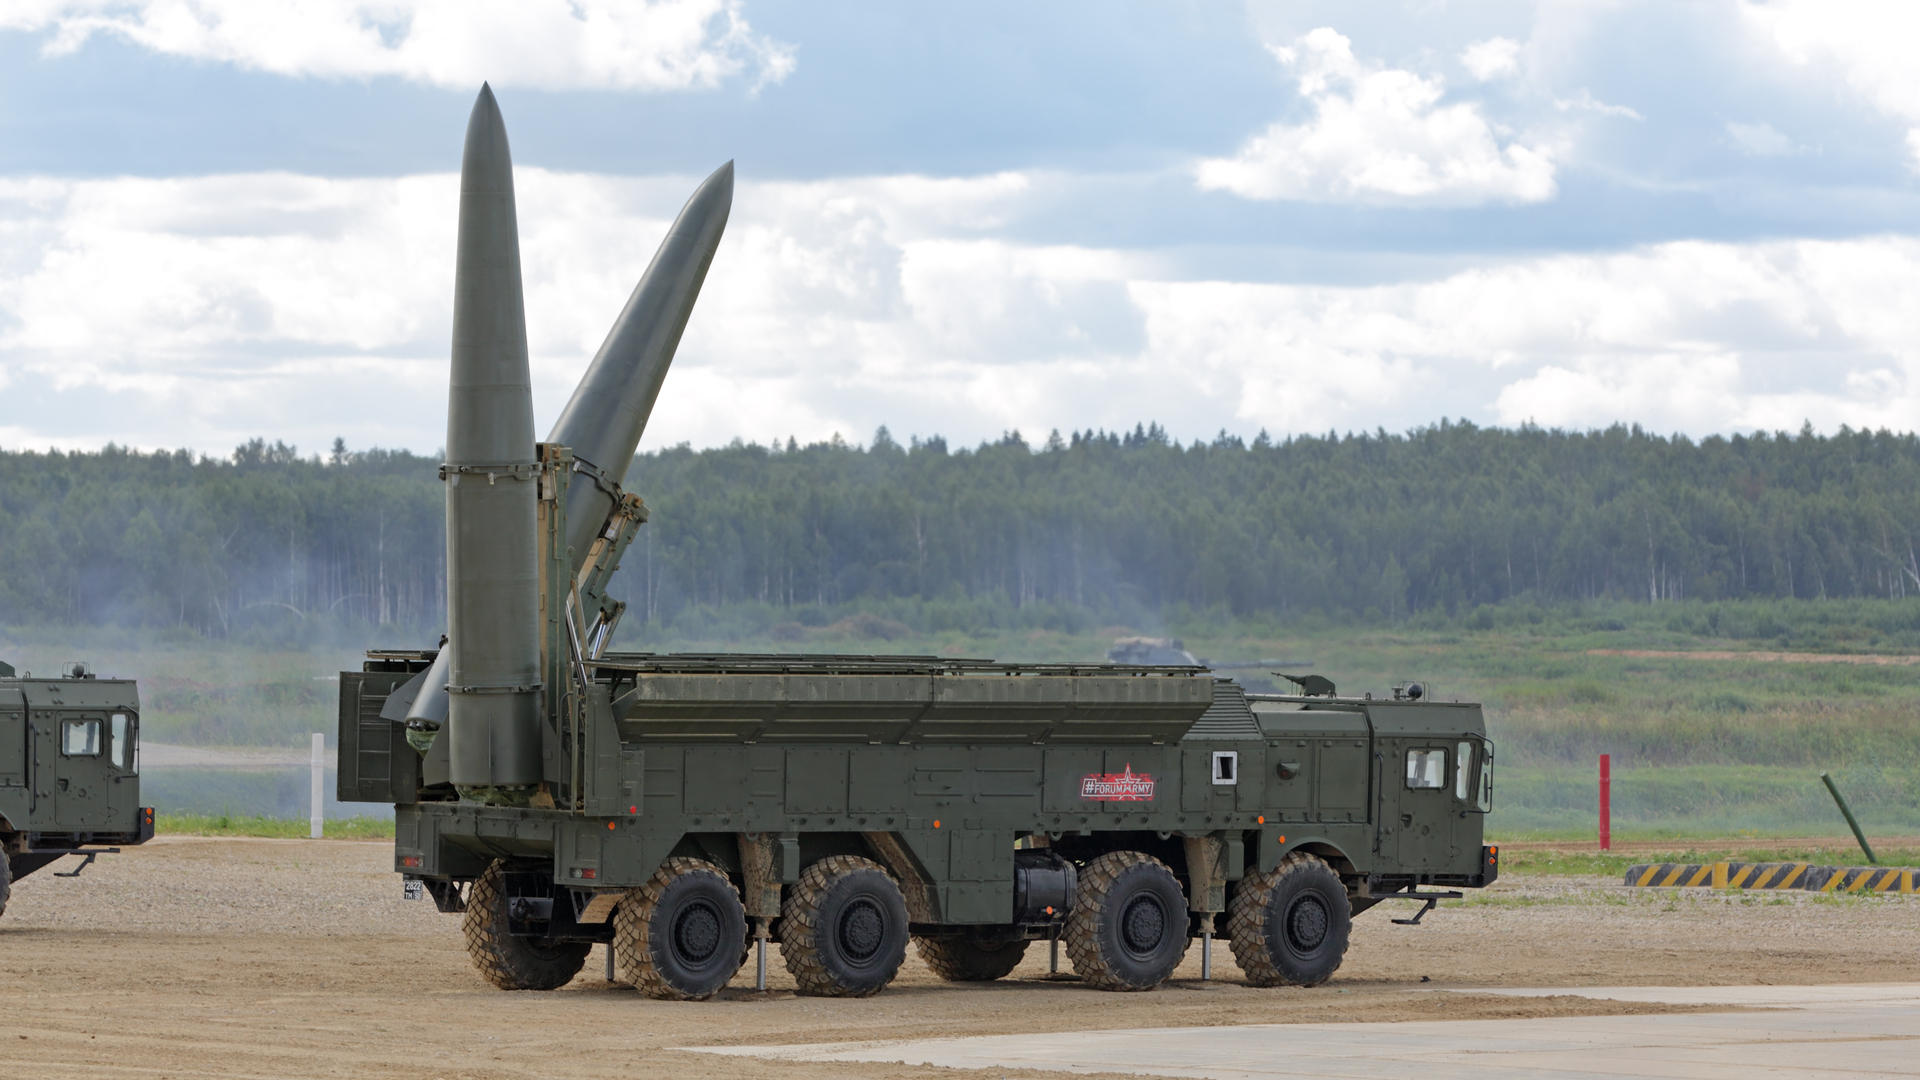 Russian military responded to NATO exercises in the Kaliningrad region: Iskander missile systems trained